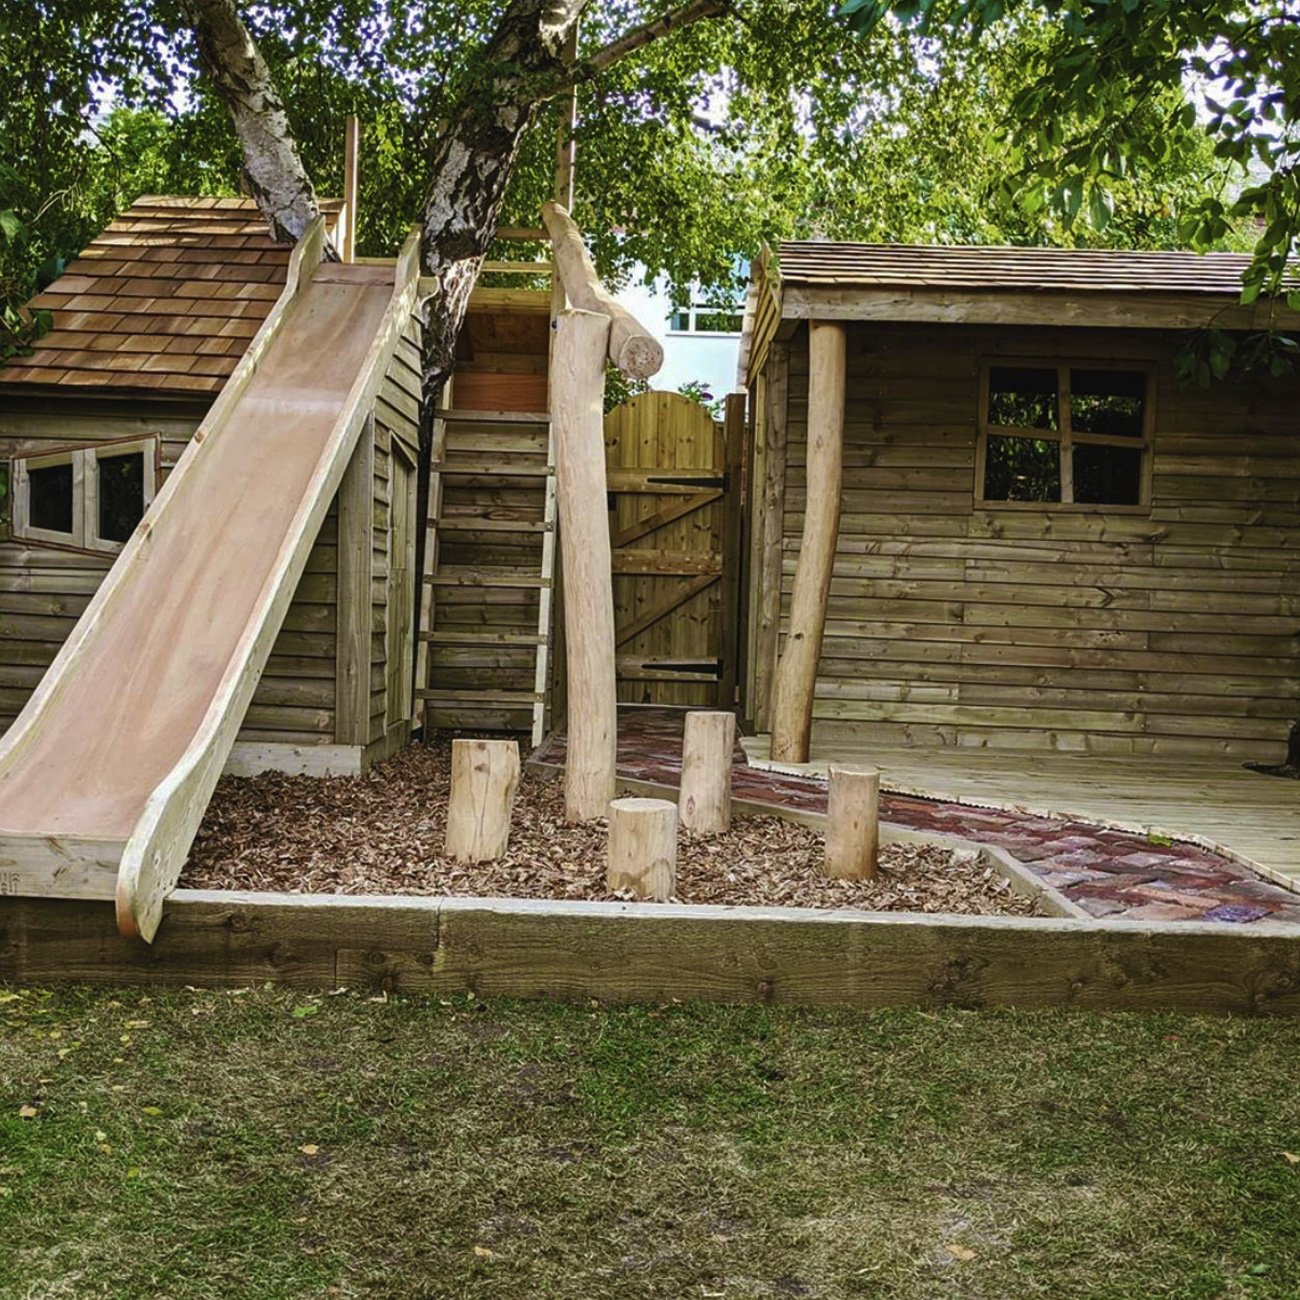 Bespoke garden joinery to create a children's playground and playspace